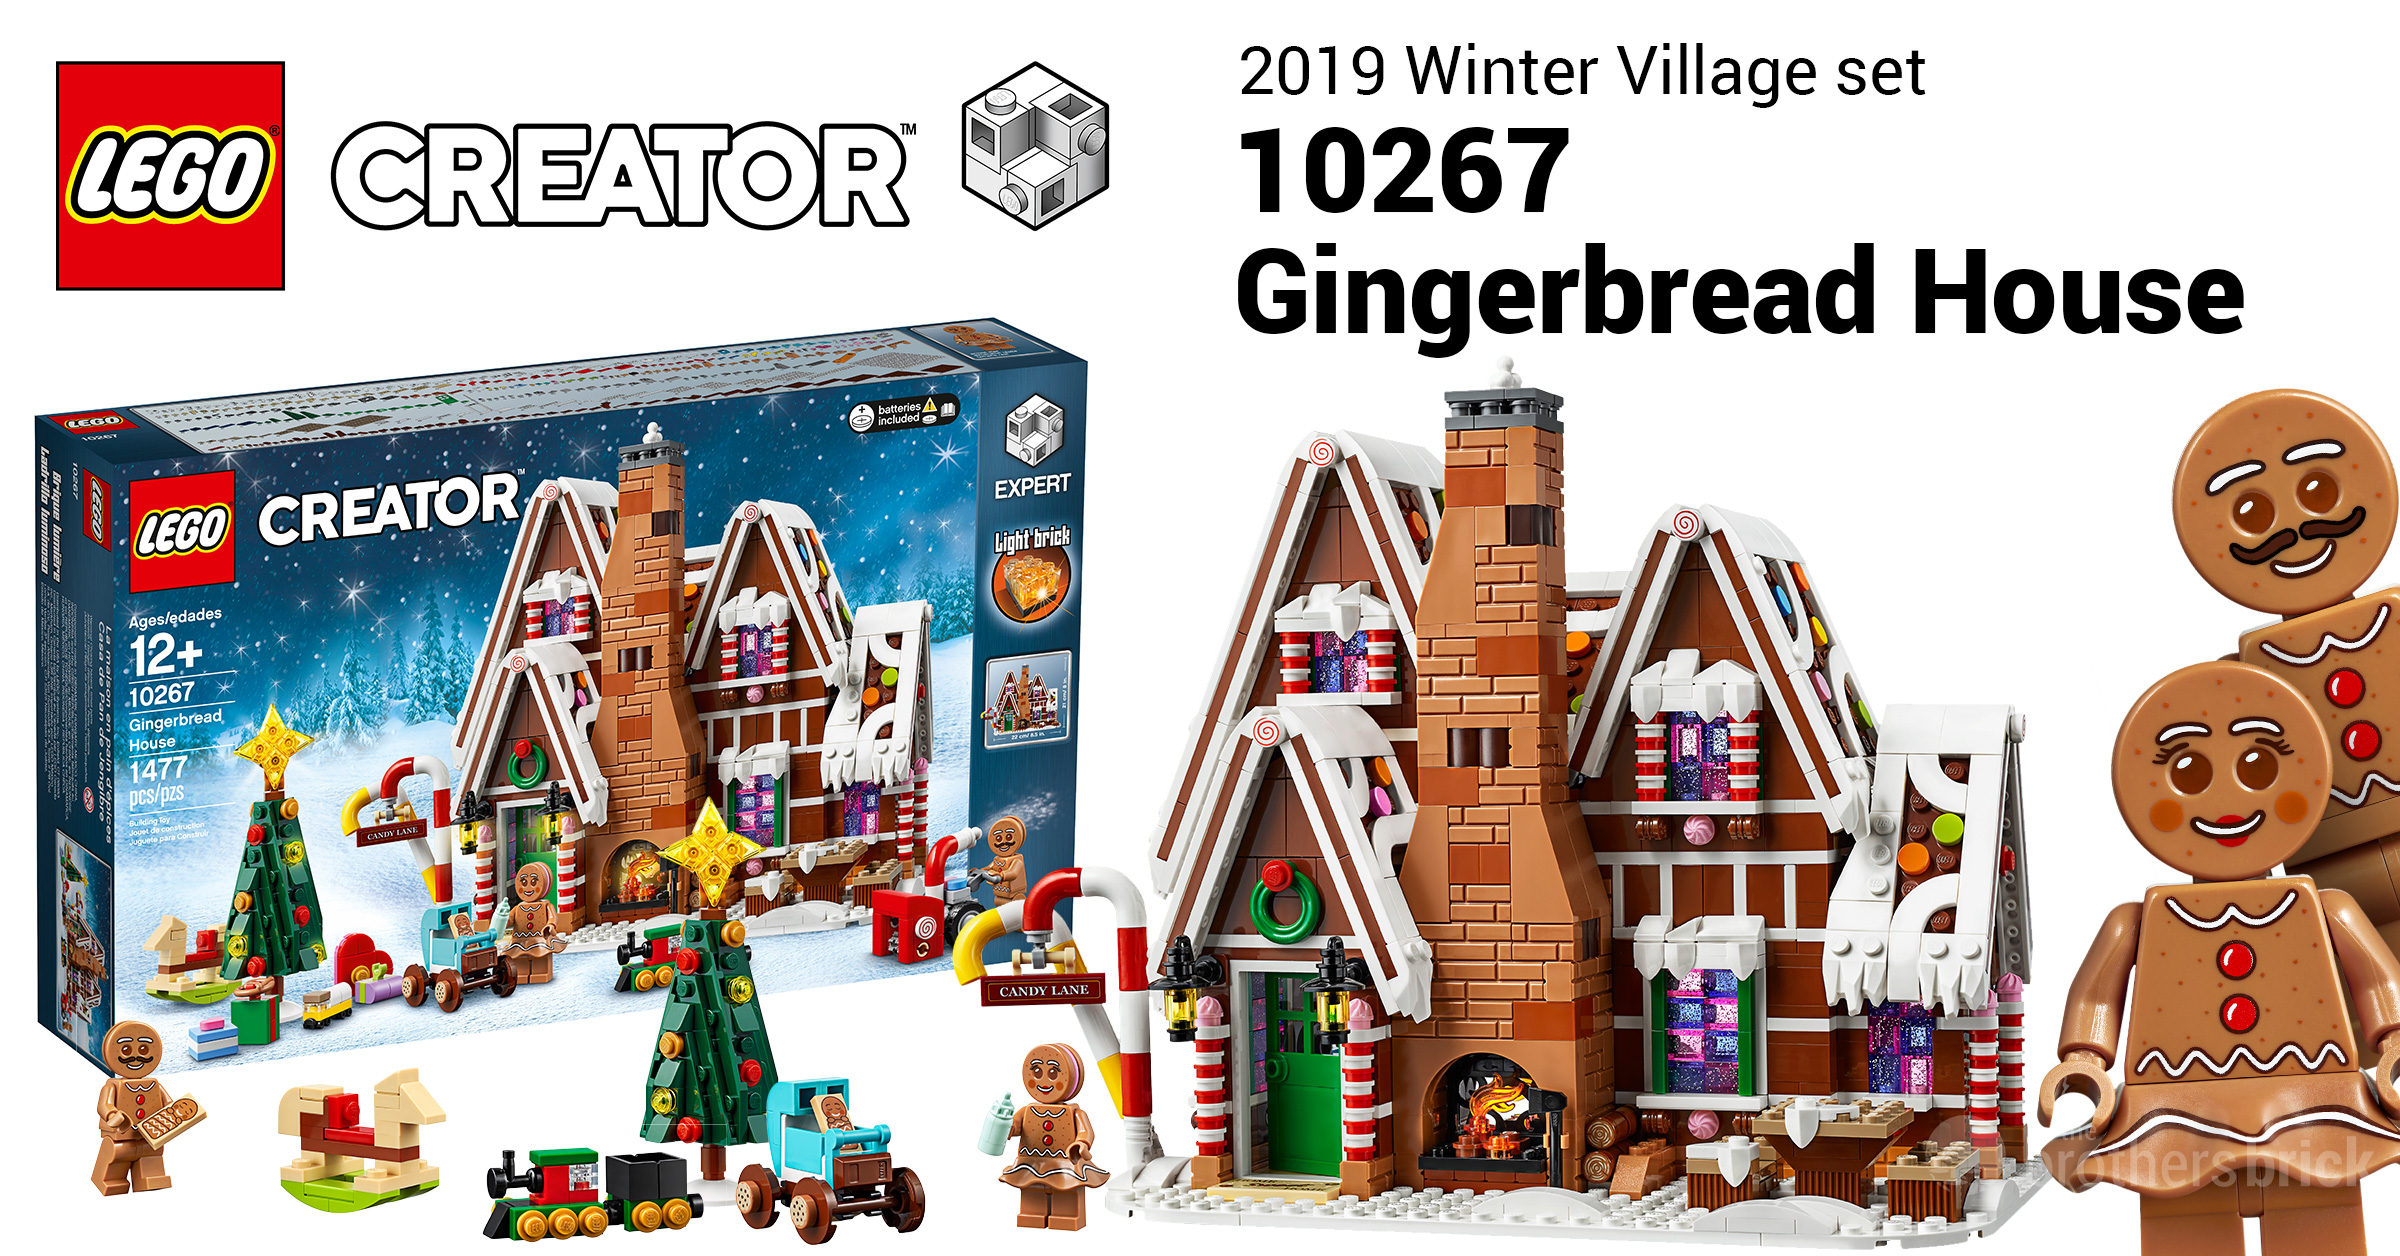 LEGO celebrates 10 years of the Winter Village with 10267 Gingerbread House [News]